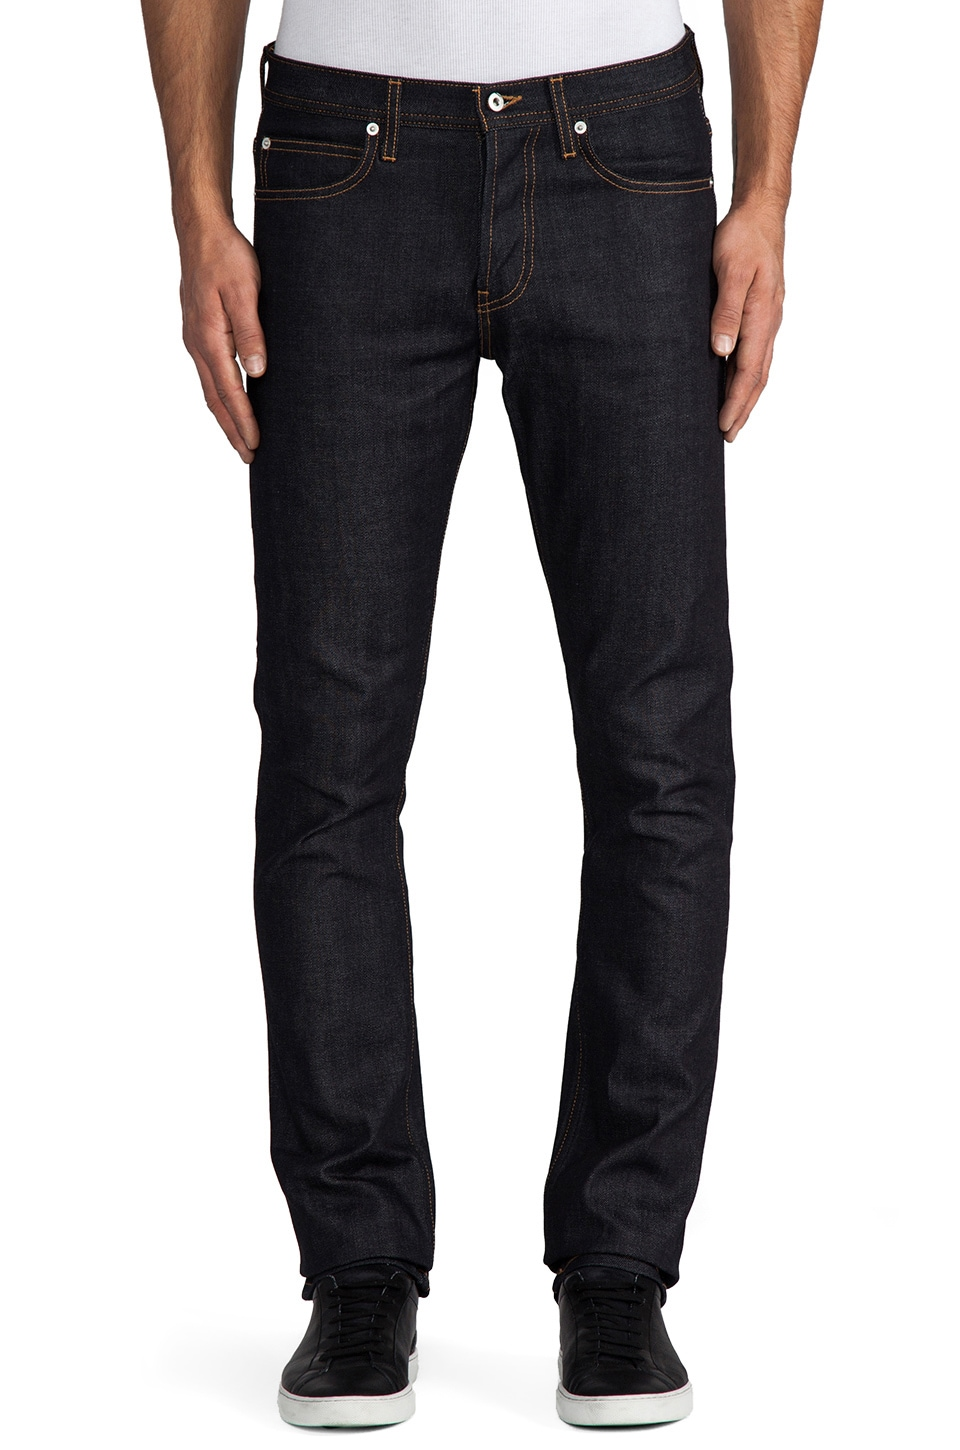 United Stock Dry Goods Slight 12.5oz Selvage in Indigo Contrast Stitch